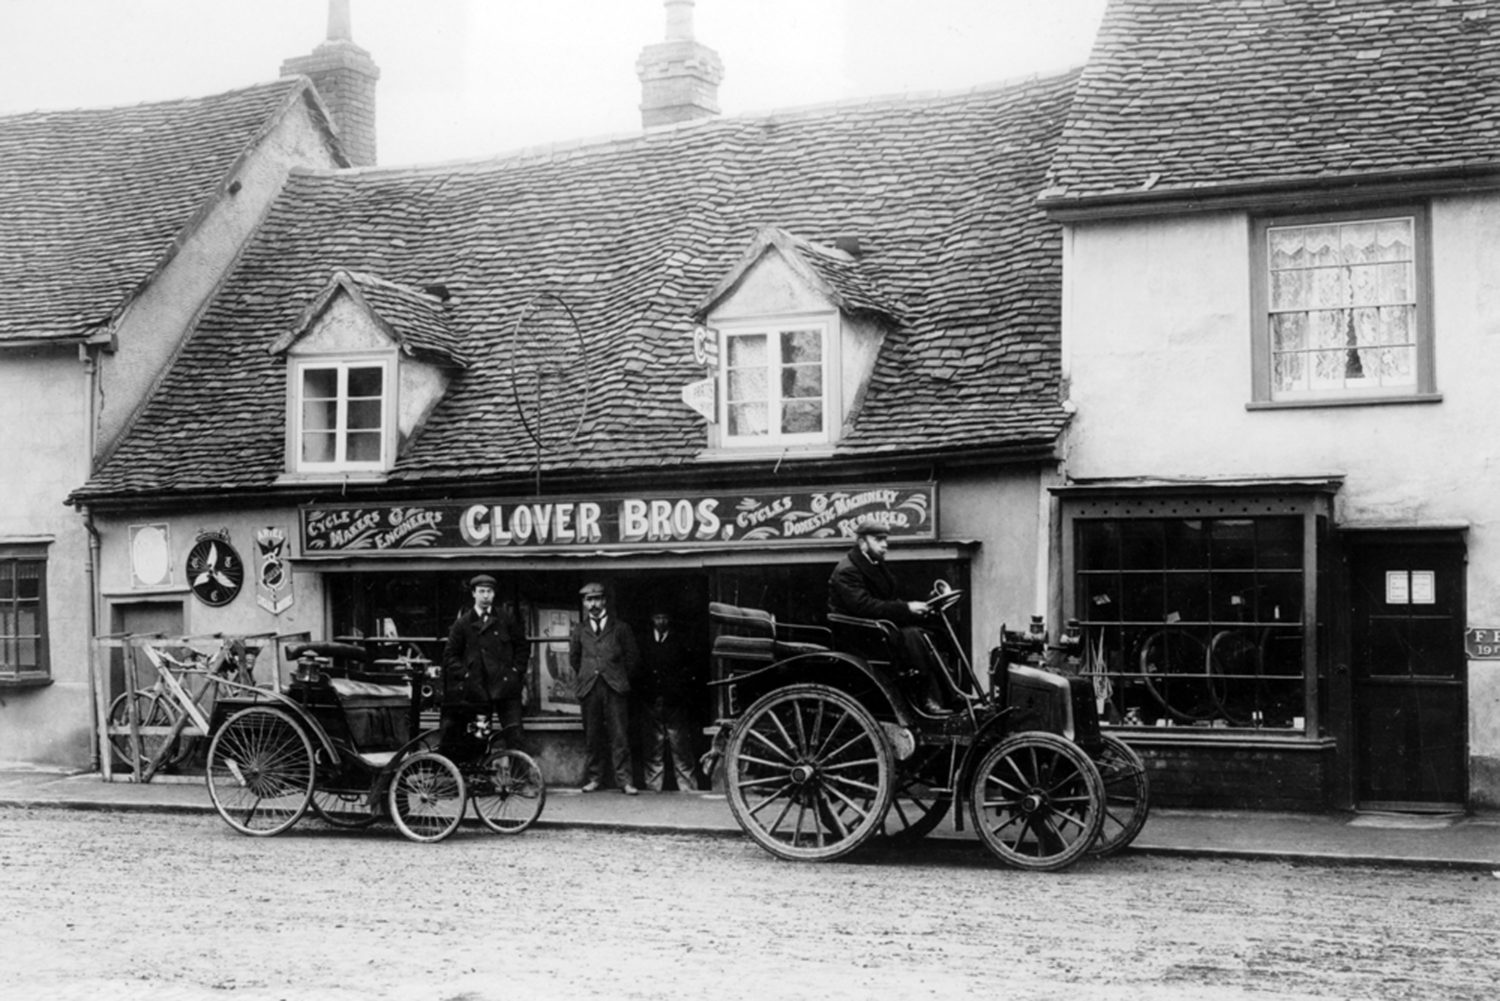 An archive image of a 1898 Benz and an early Panhard,, c1900, in a street outside Glover Bros cycle shop